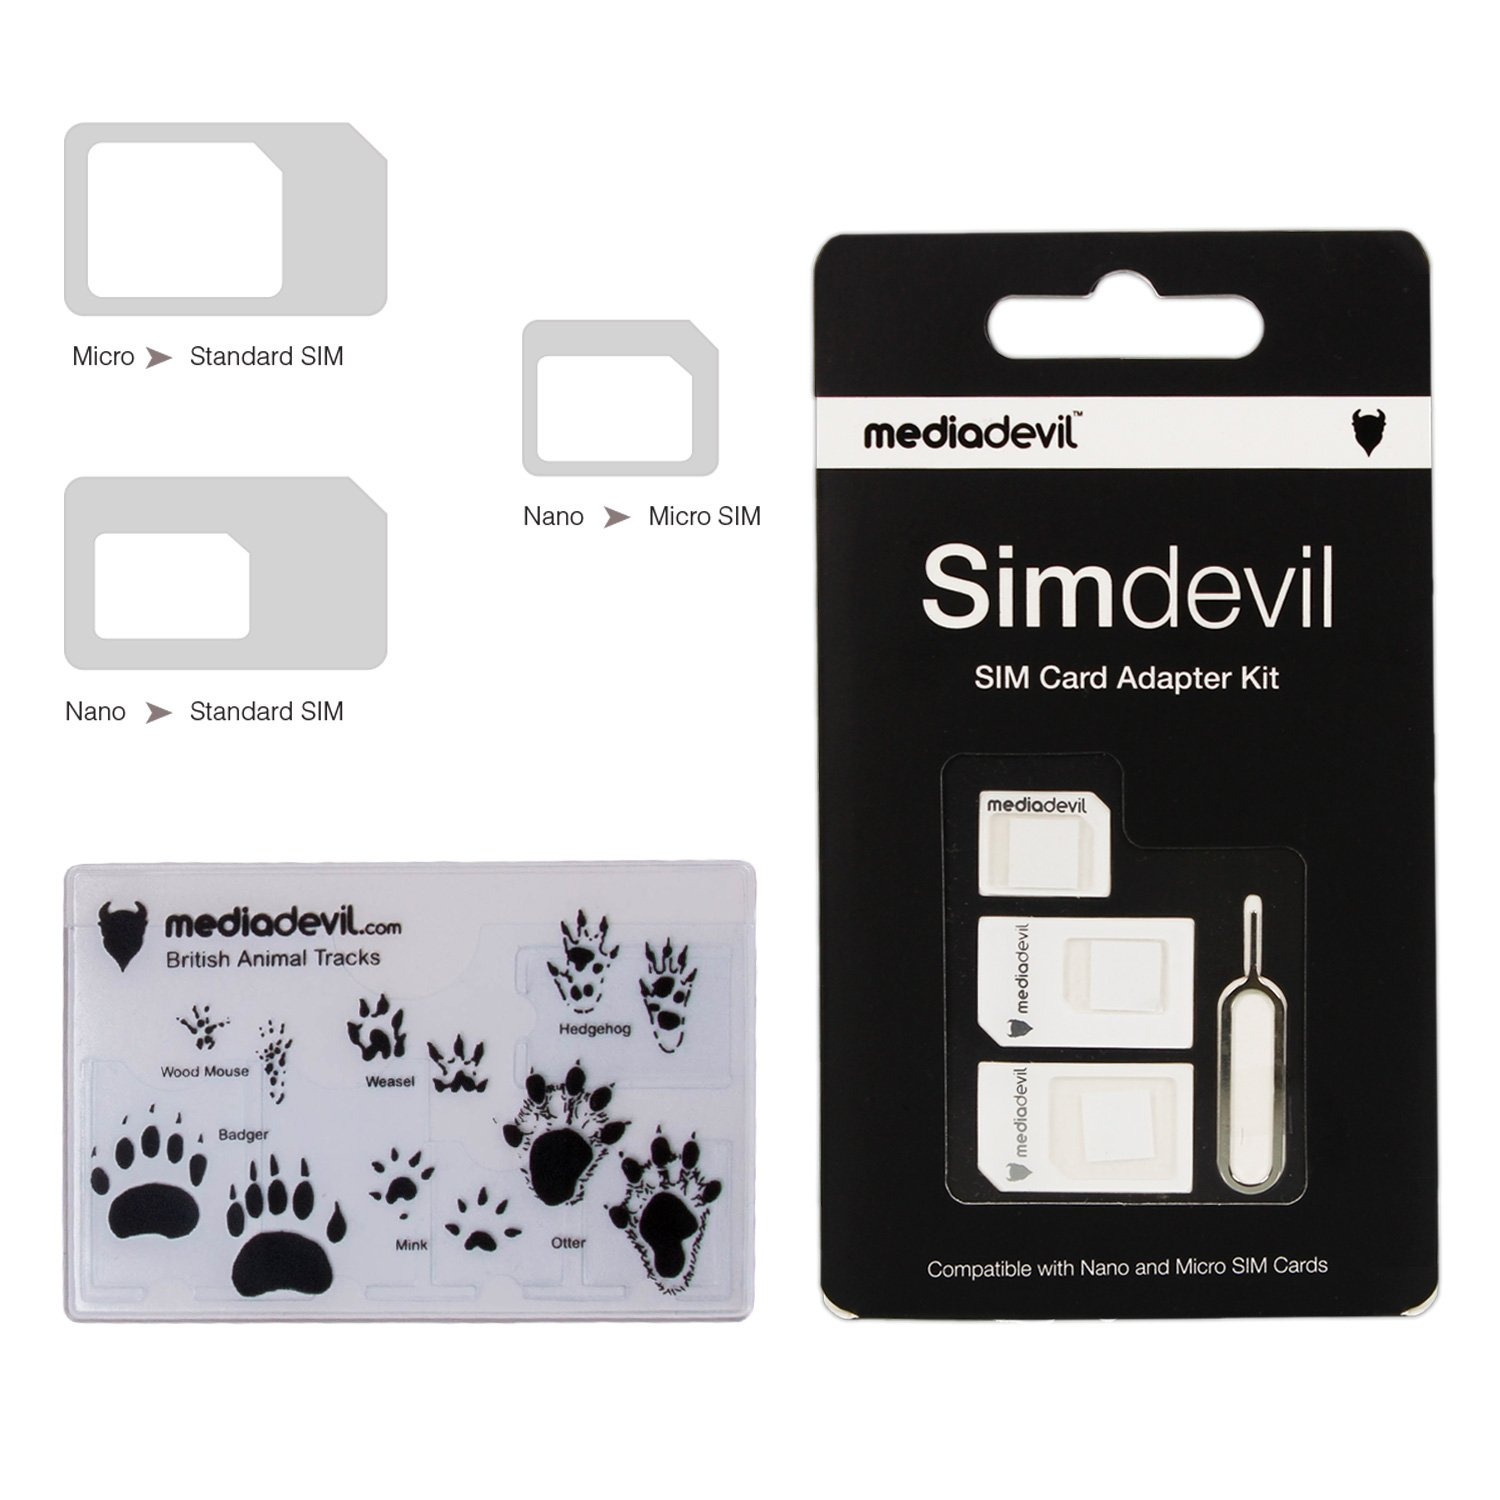 Mediadevil Simdevil 3 In 1 Sim Card Adapter Kit Nano Noosy Original Micro Standard Cell Phones Accessories